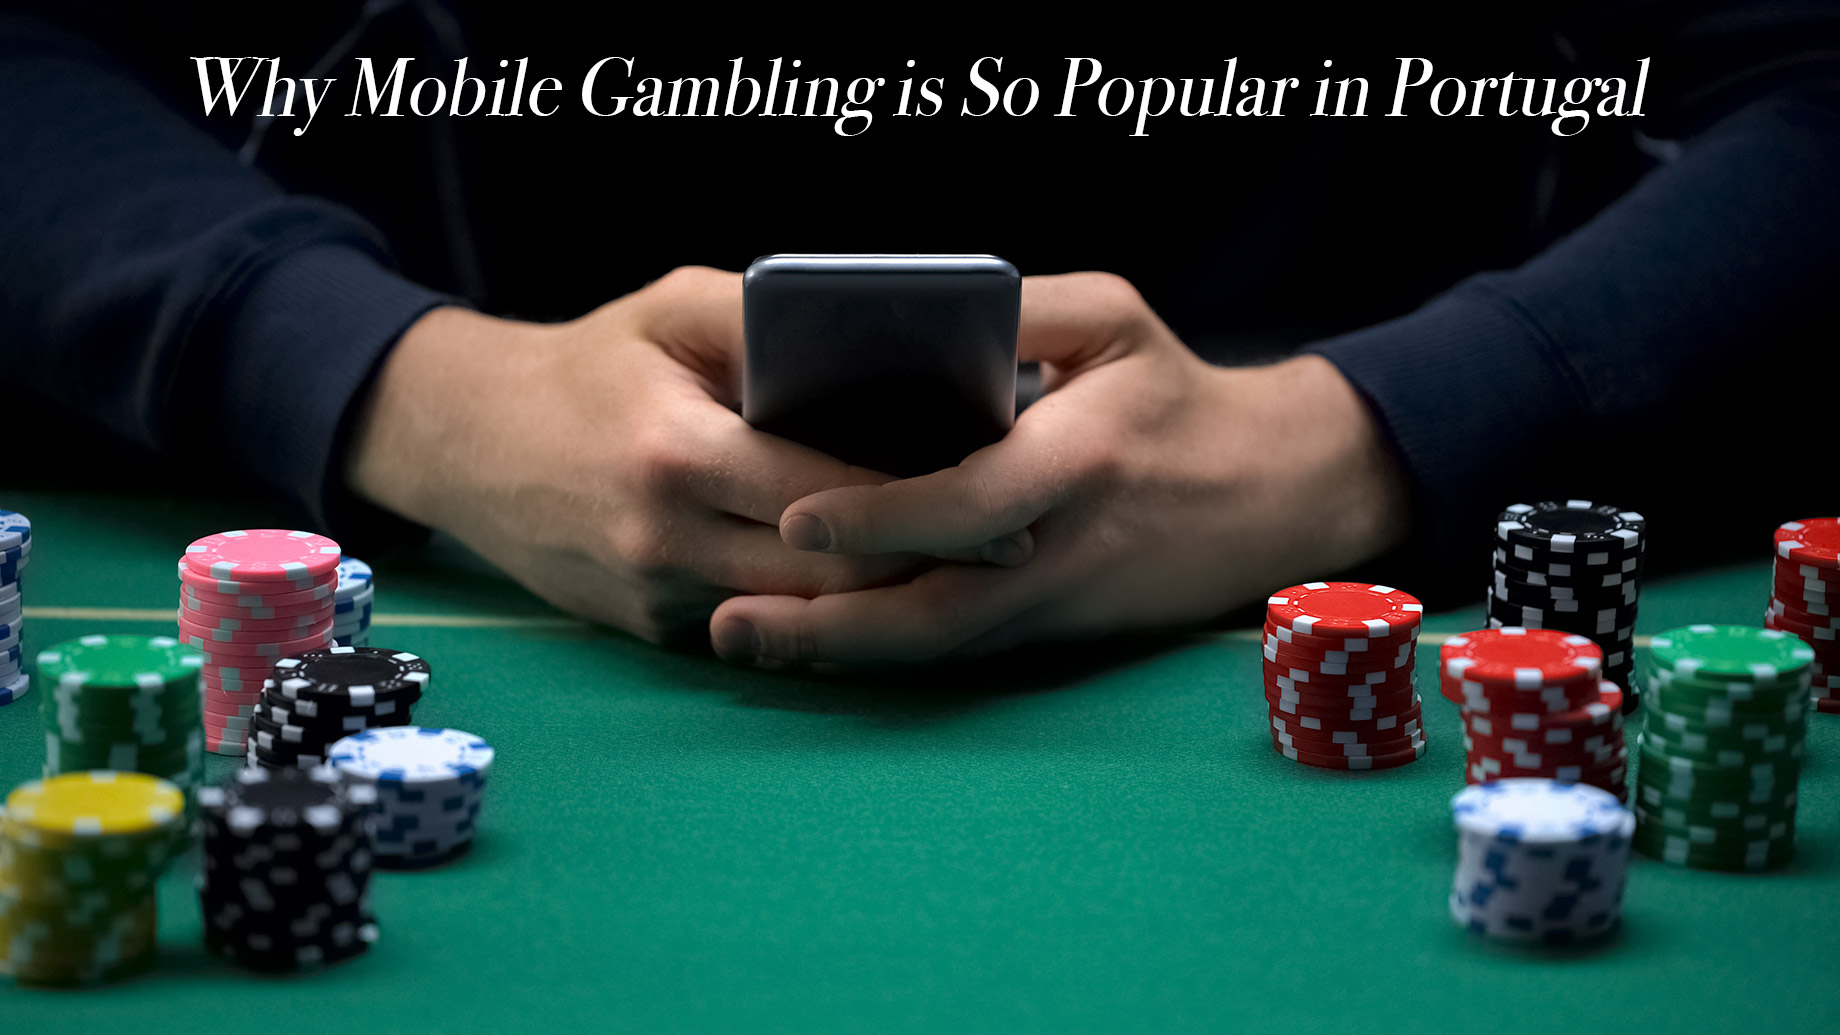 Why Mobile Gambling is So Popular in Portugal